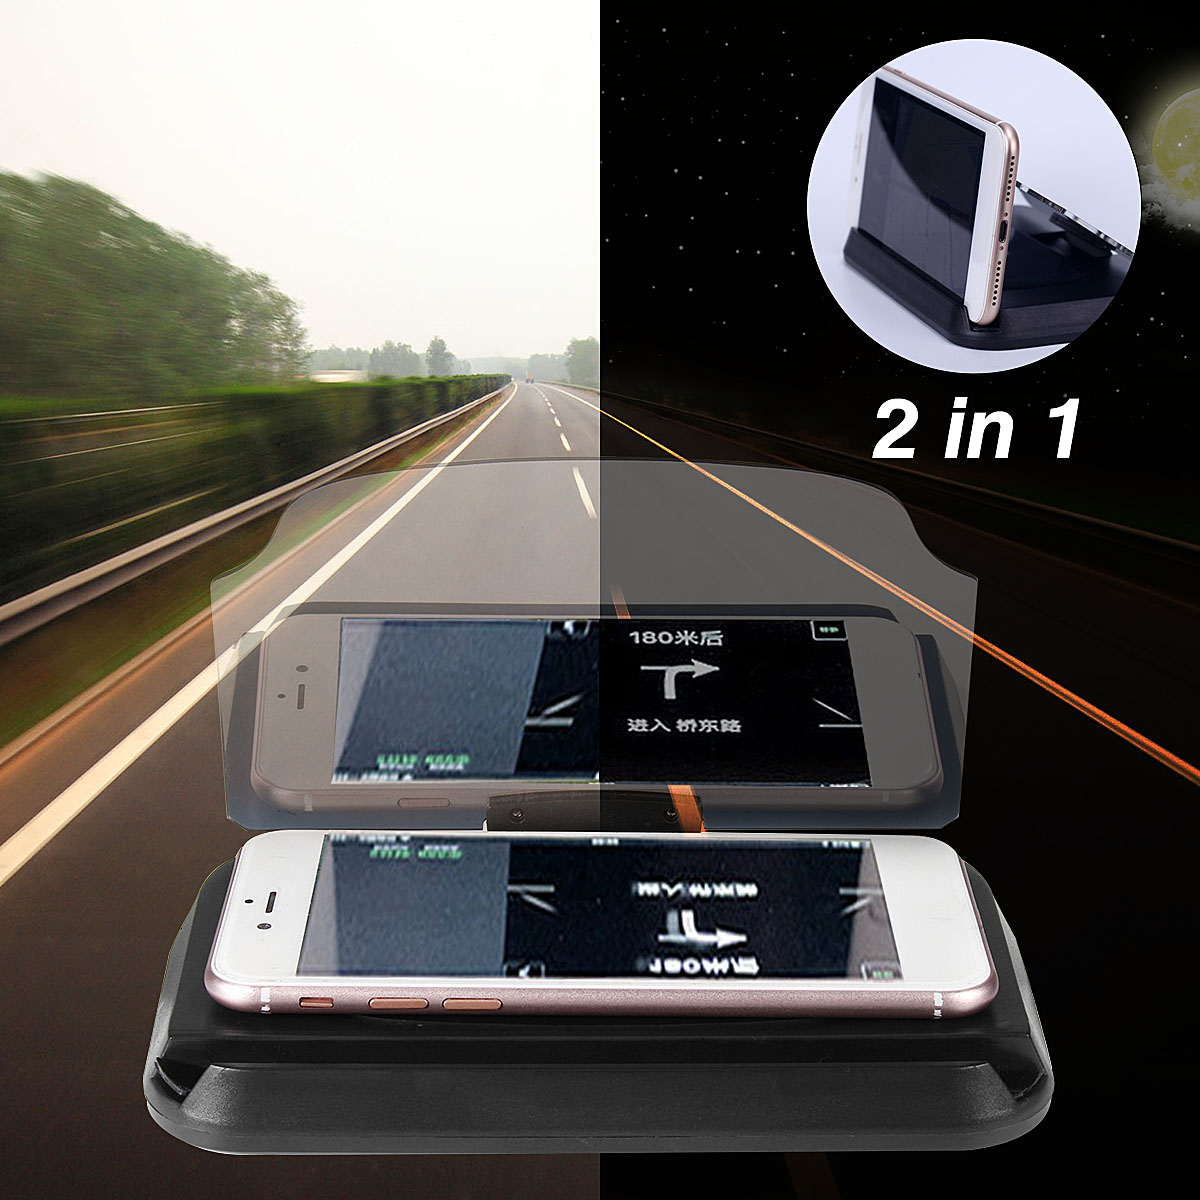 2 in 1 HUD Head Up Display Navigation Car GPS Phone Mount Bracket Holder for iPhone Samsung Xiaomi